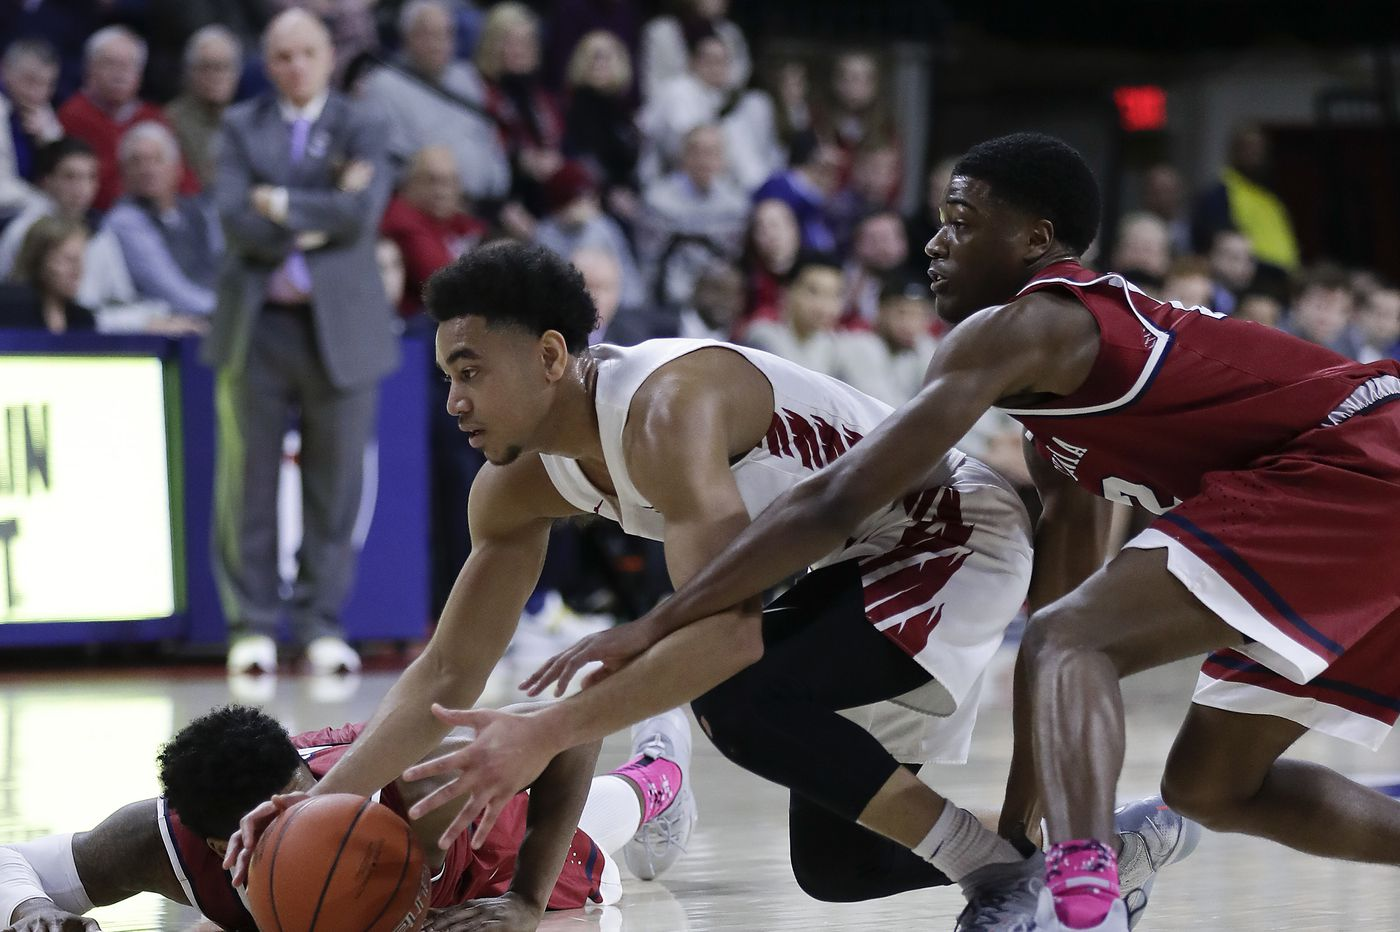 St. Joseph's guard Jared Bynum says he will enter transfer portal following coaching change